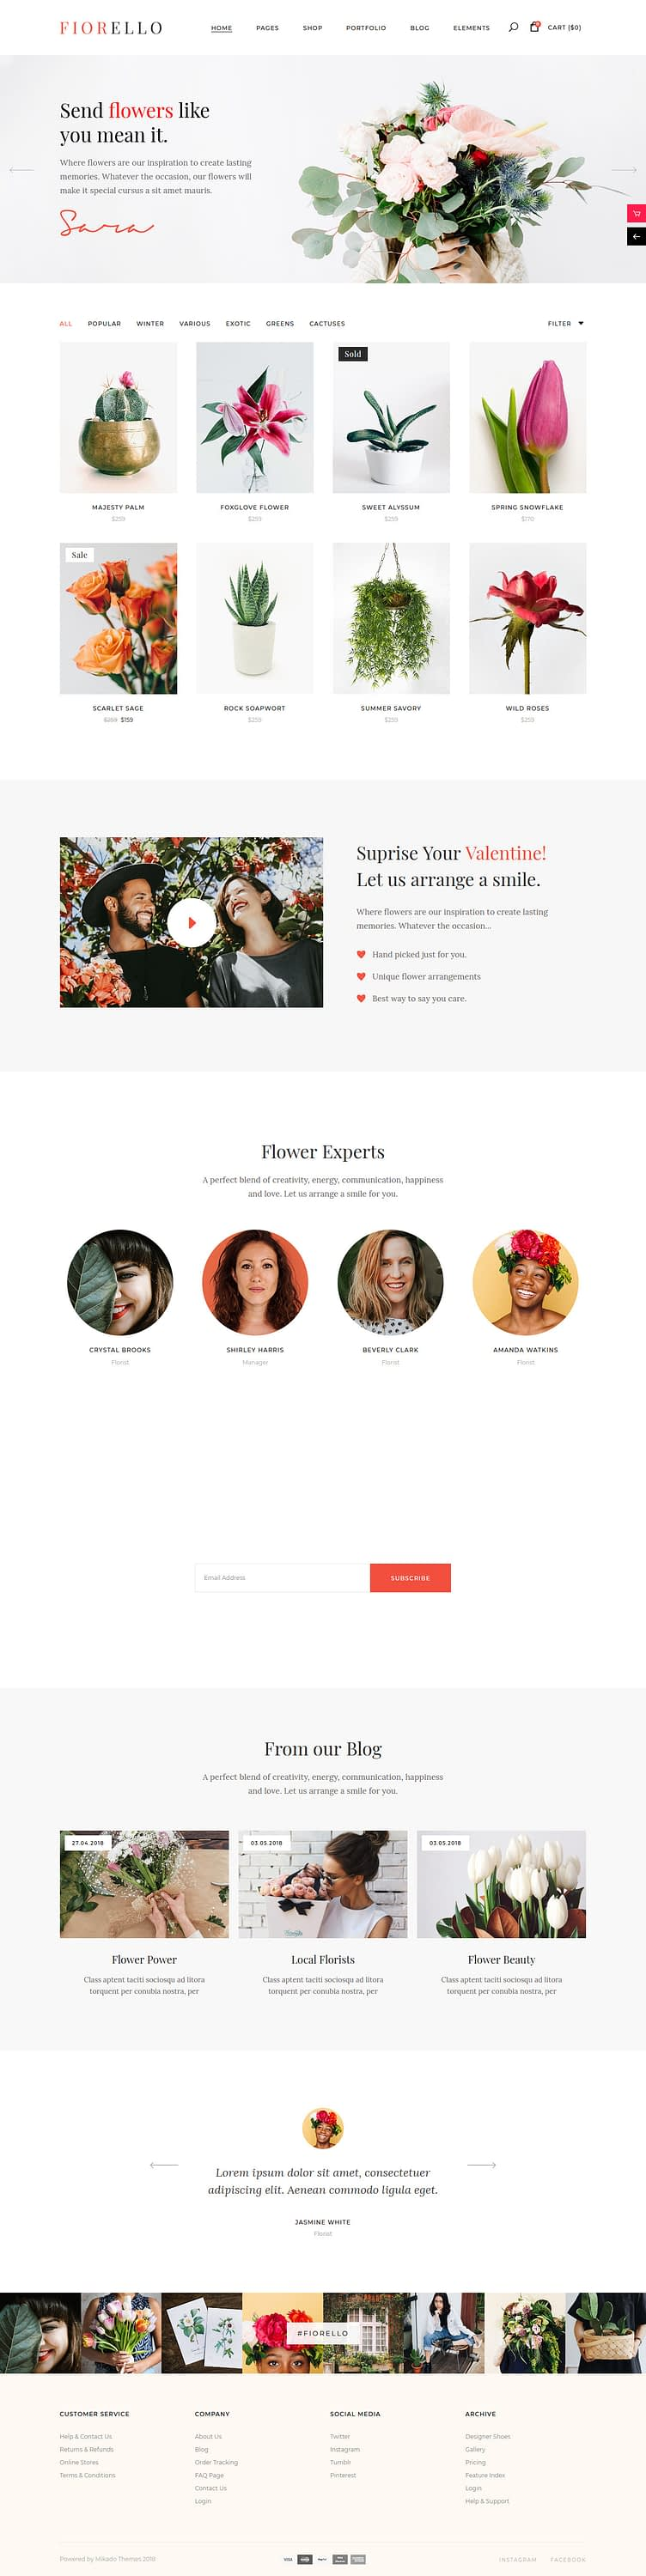 fiorello best premium florist floriculture wordpress theme - 10+ Best Premium Florist and Floriculture WordPress Themes